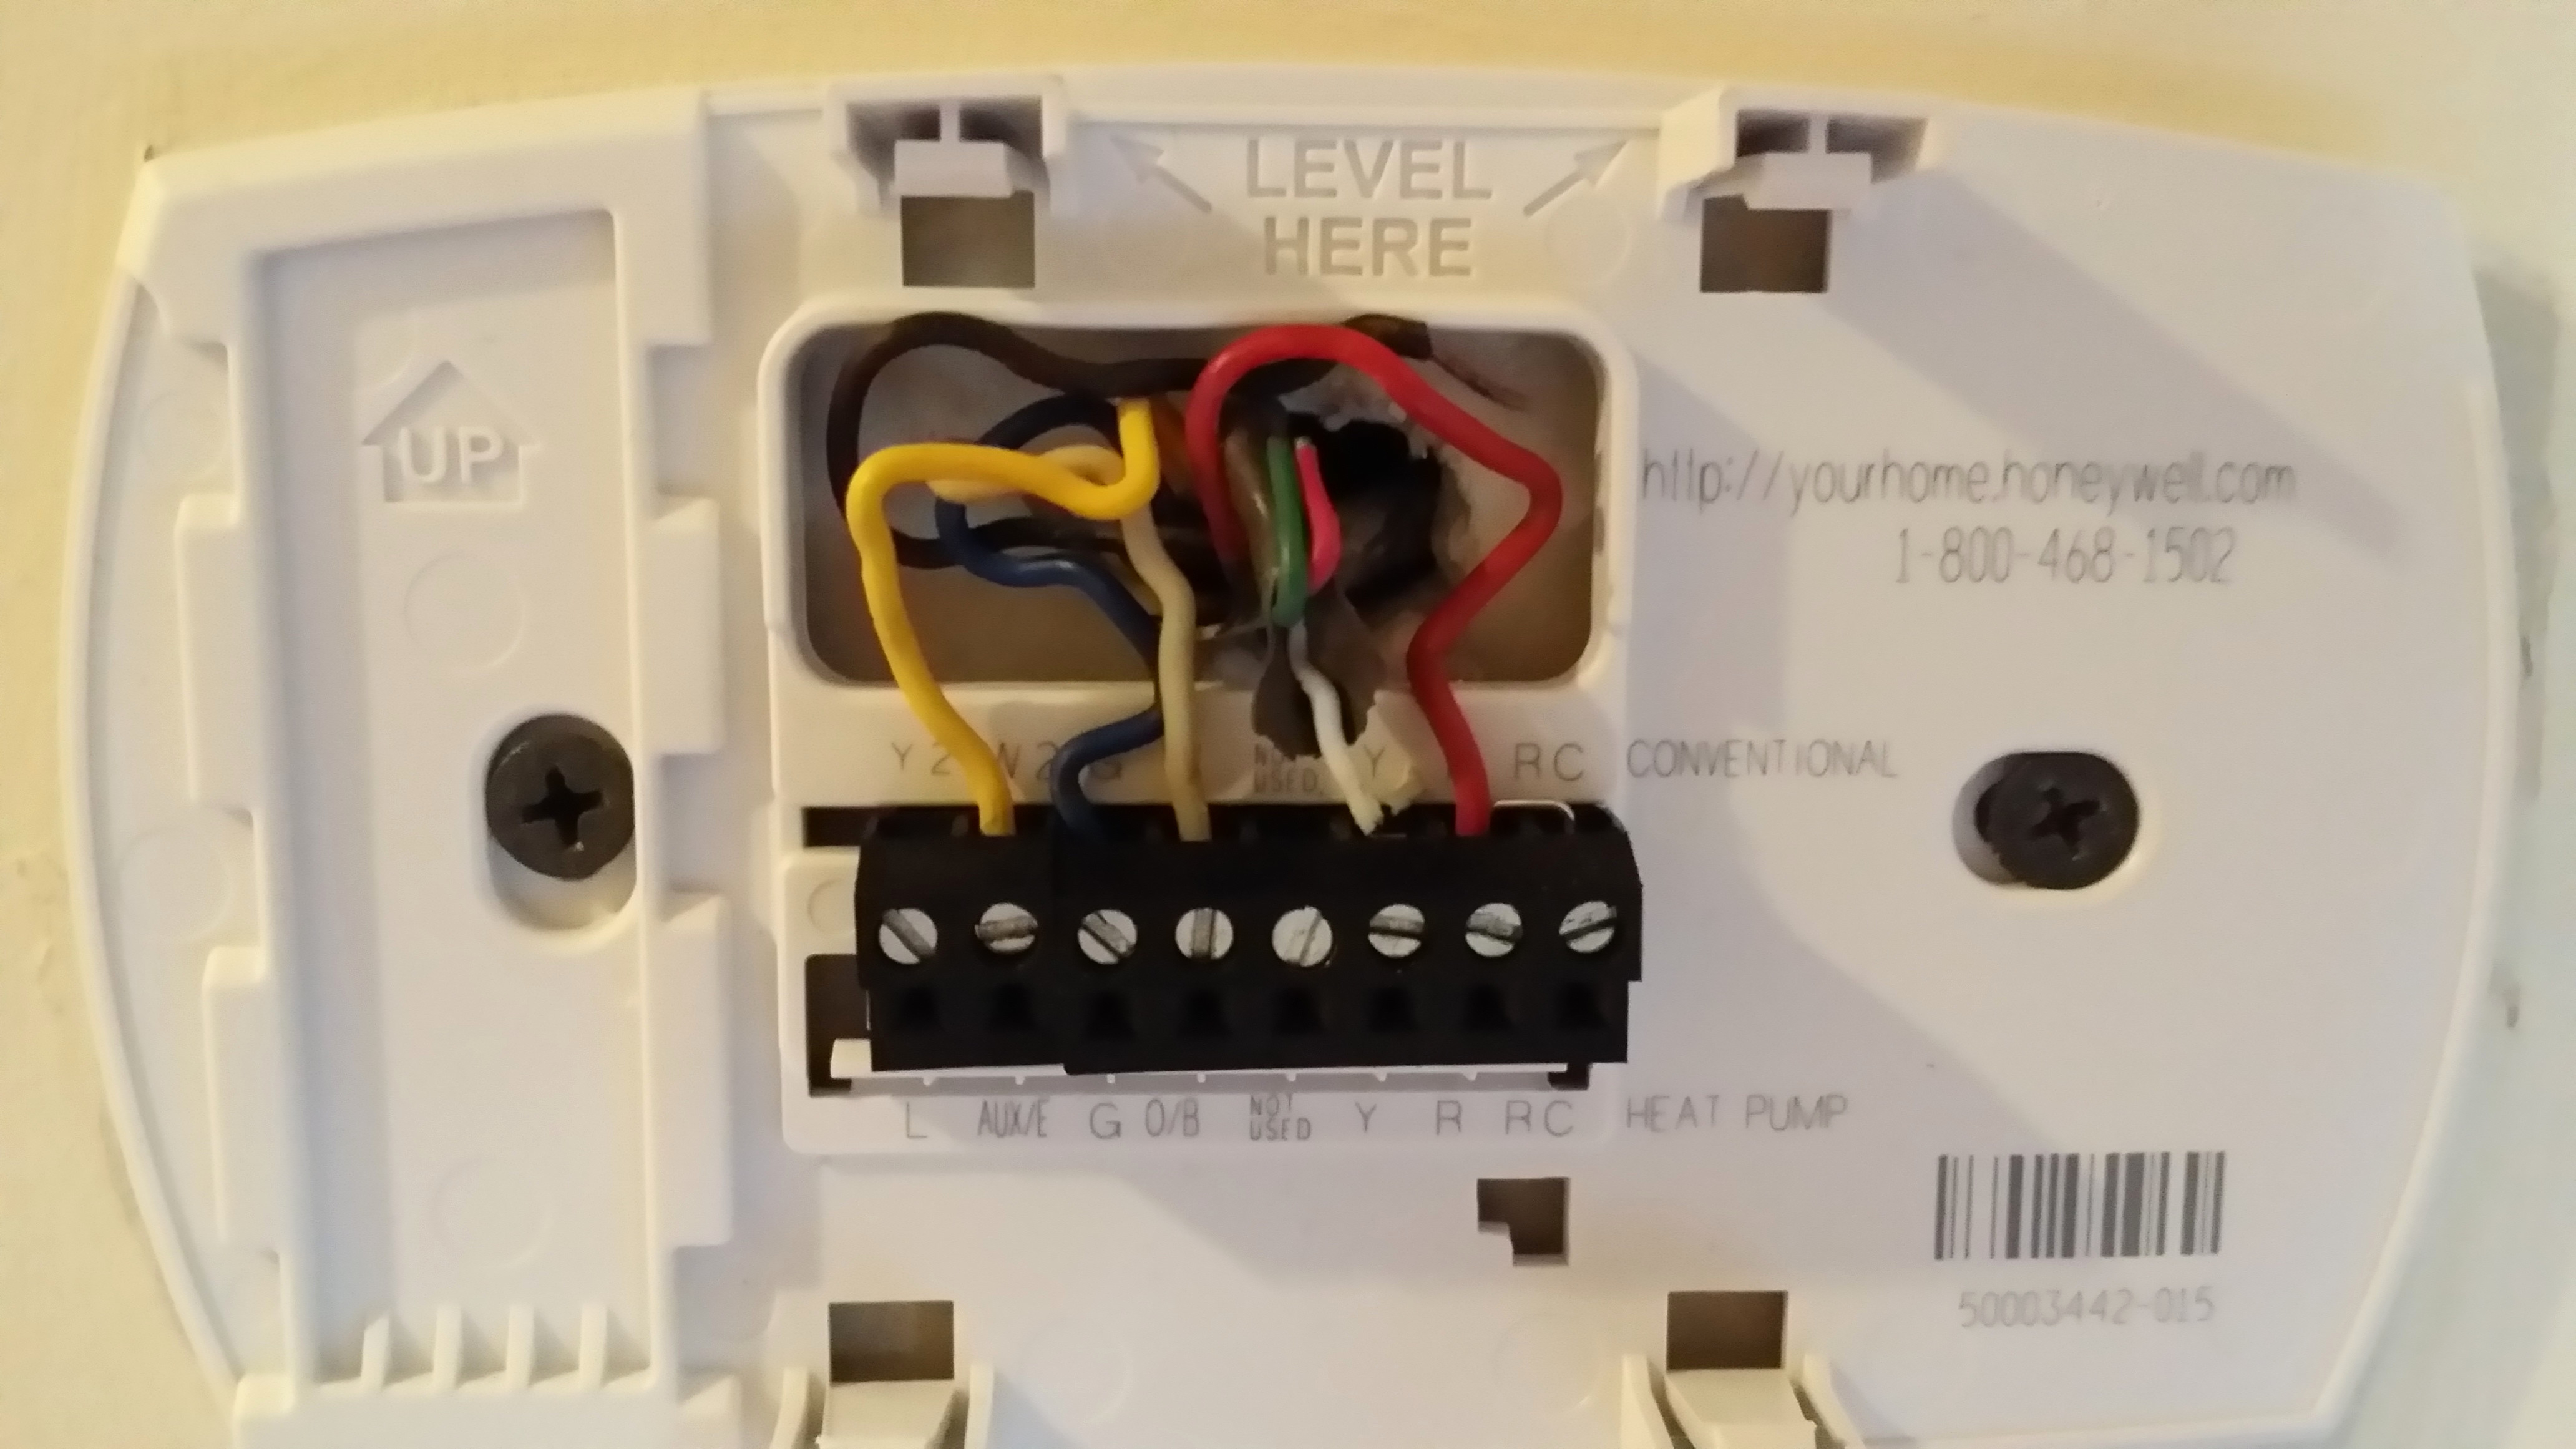 honeywell thermostat wiring diagram Collection-Honeywell Rth111 Thermostat Wiring Diagram Throughout 14-l